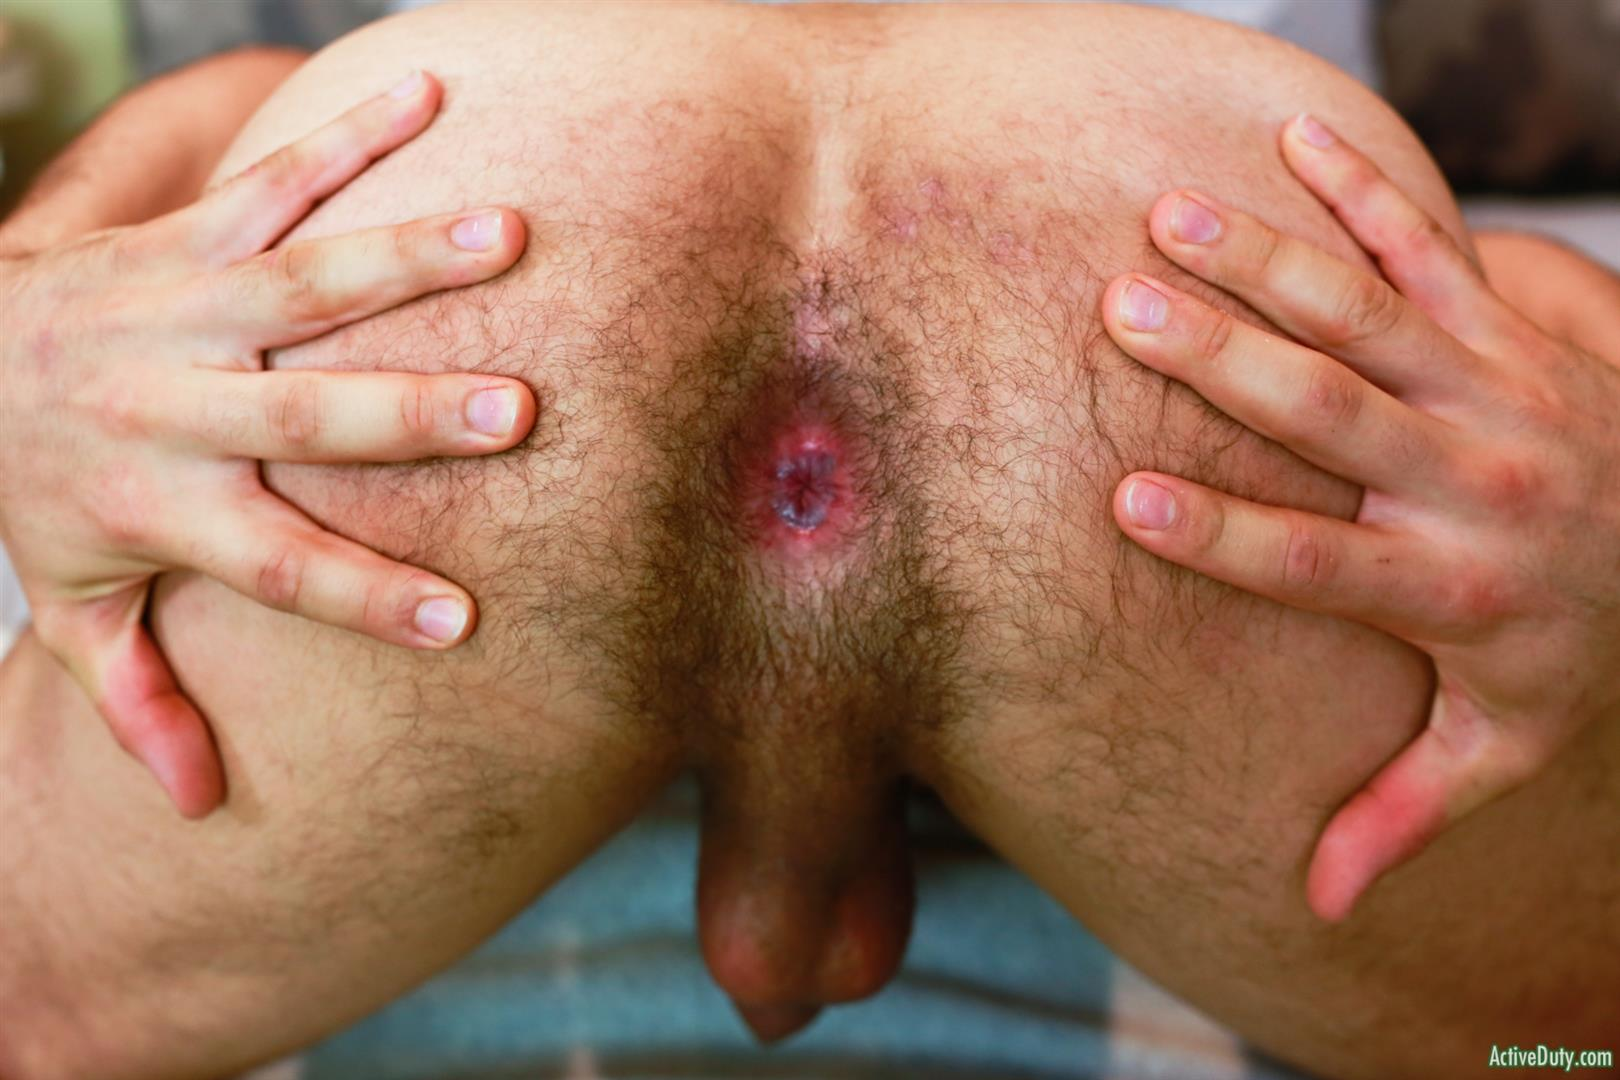 Active-Duty-Monte-Marcello-Big-Uncut-Dick-Soldier-Jerking-Off-With-Hairy-Ass-15 US Army Private Jerks His Big Uncut Cock And Shows Off His Hairy Hole